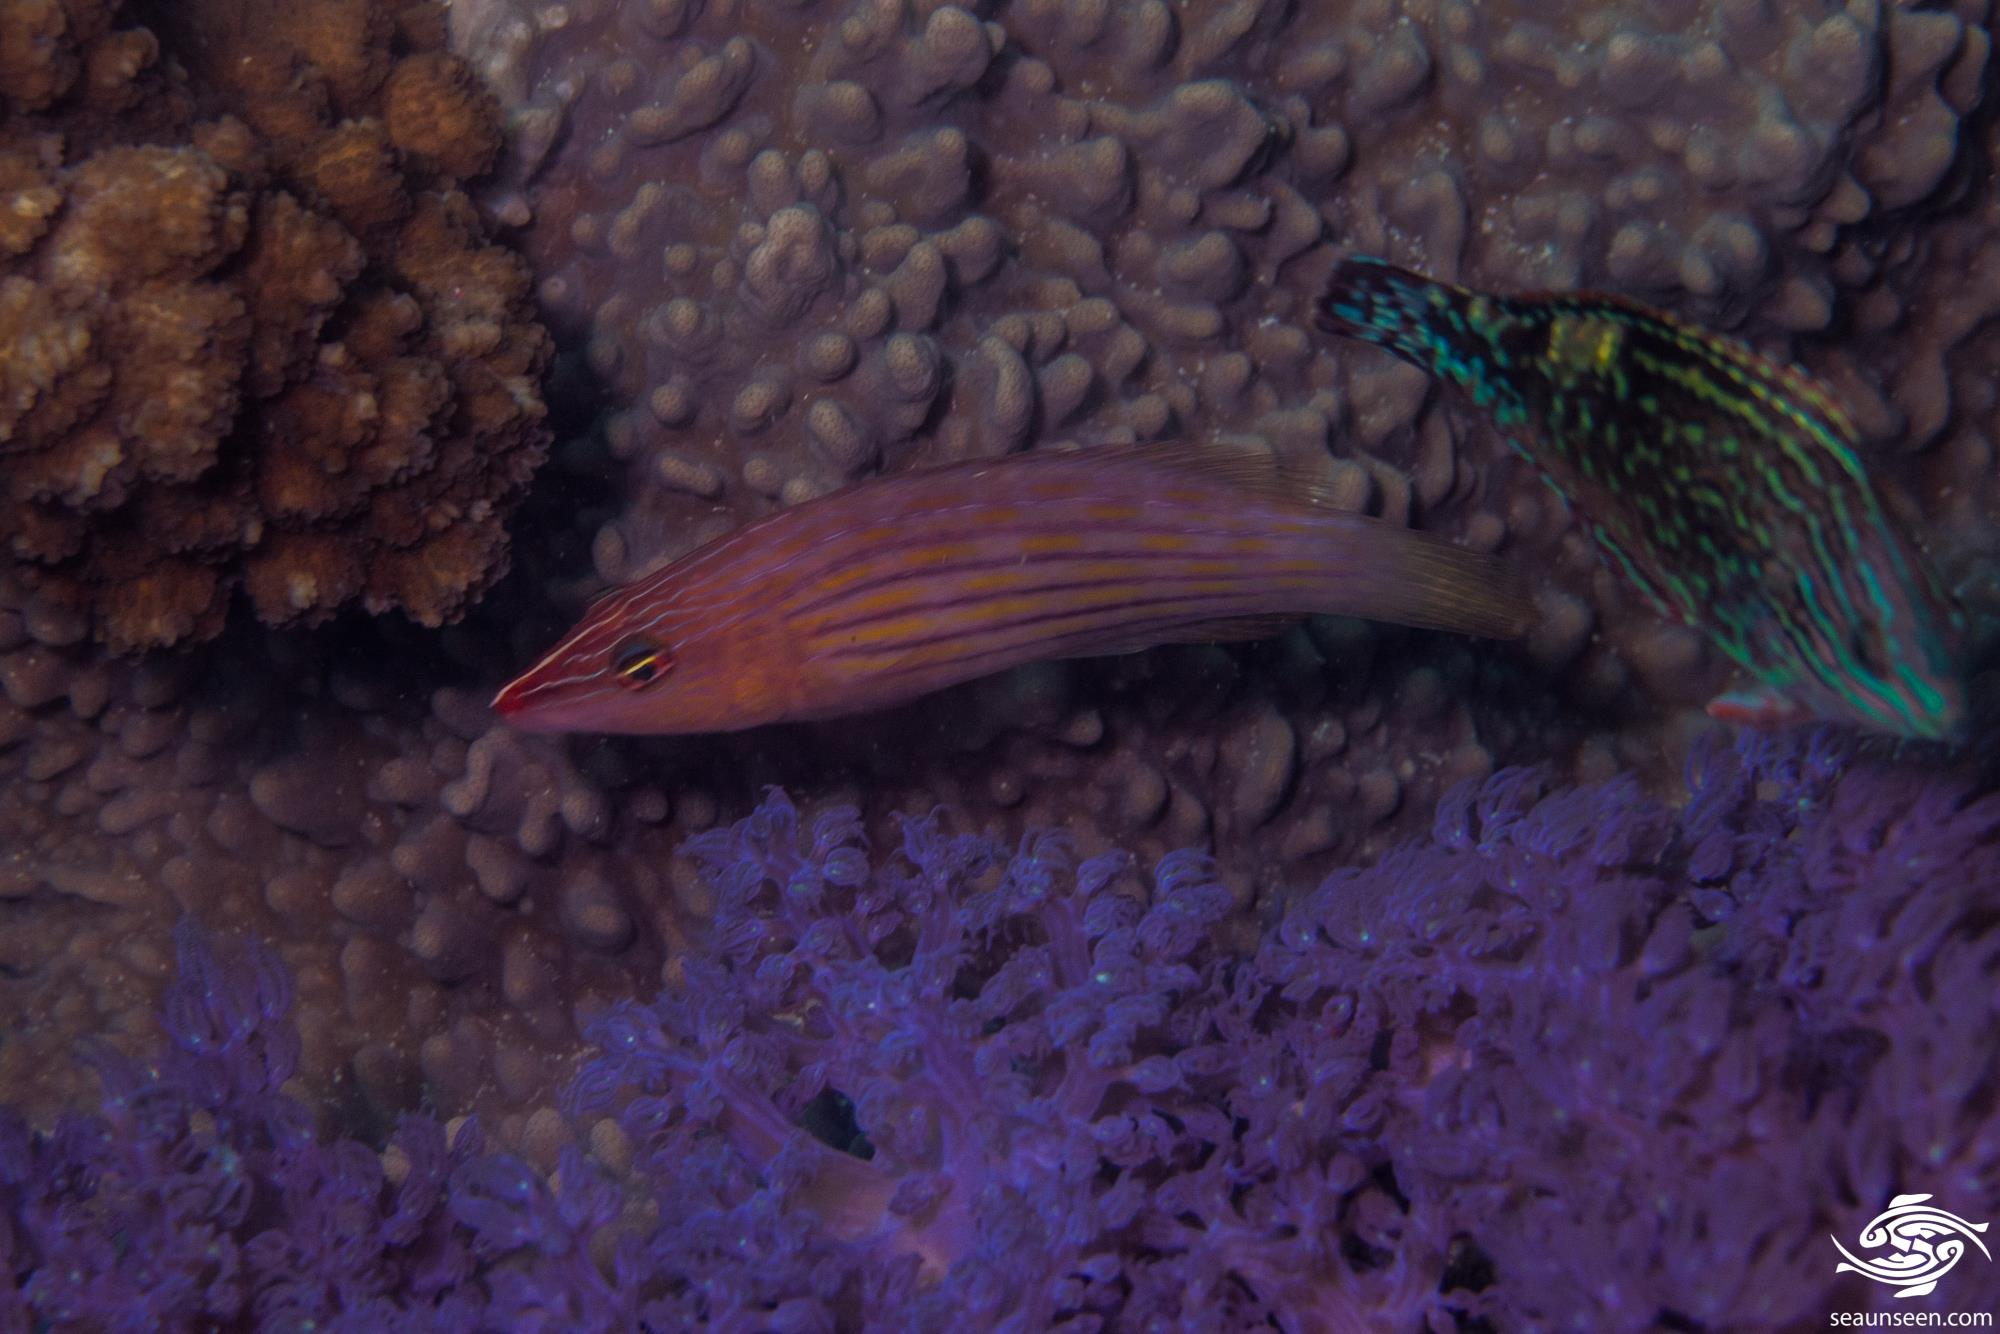 Eight lined wrasse (Pseudocheilinus octotaenia) is also known as the Eightstripe Wrasse or Eightline Wrasse